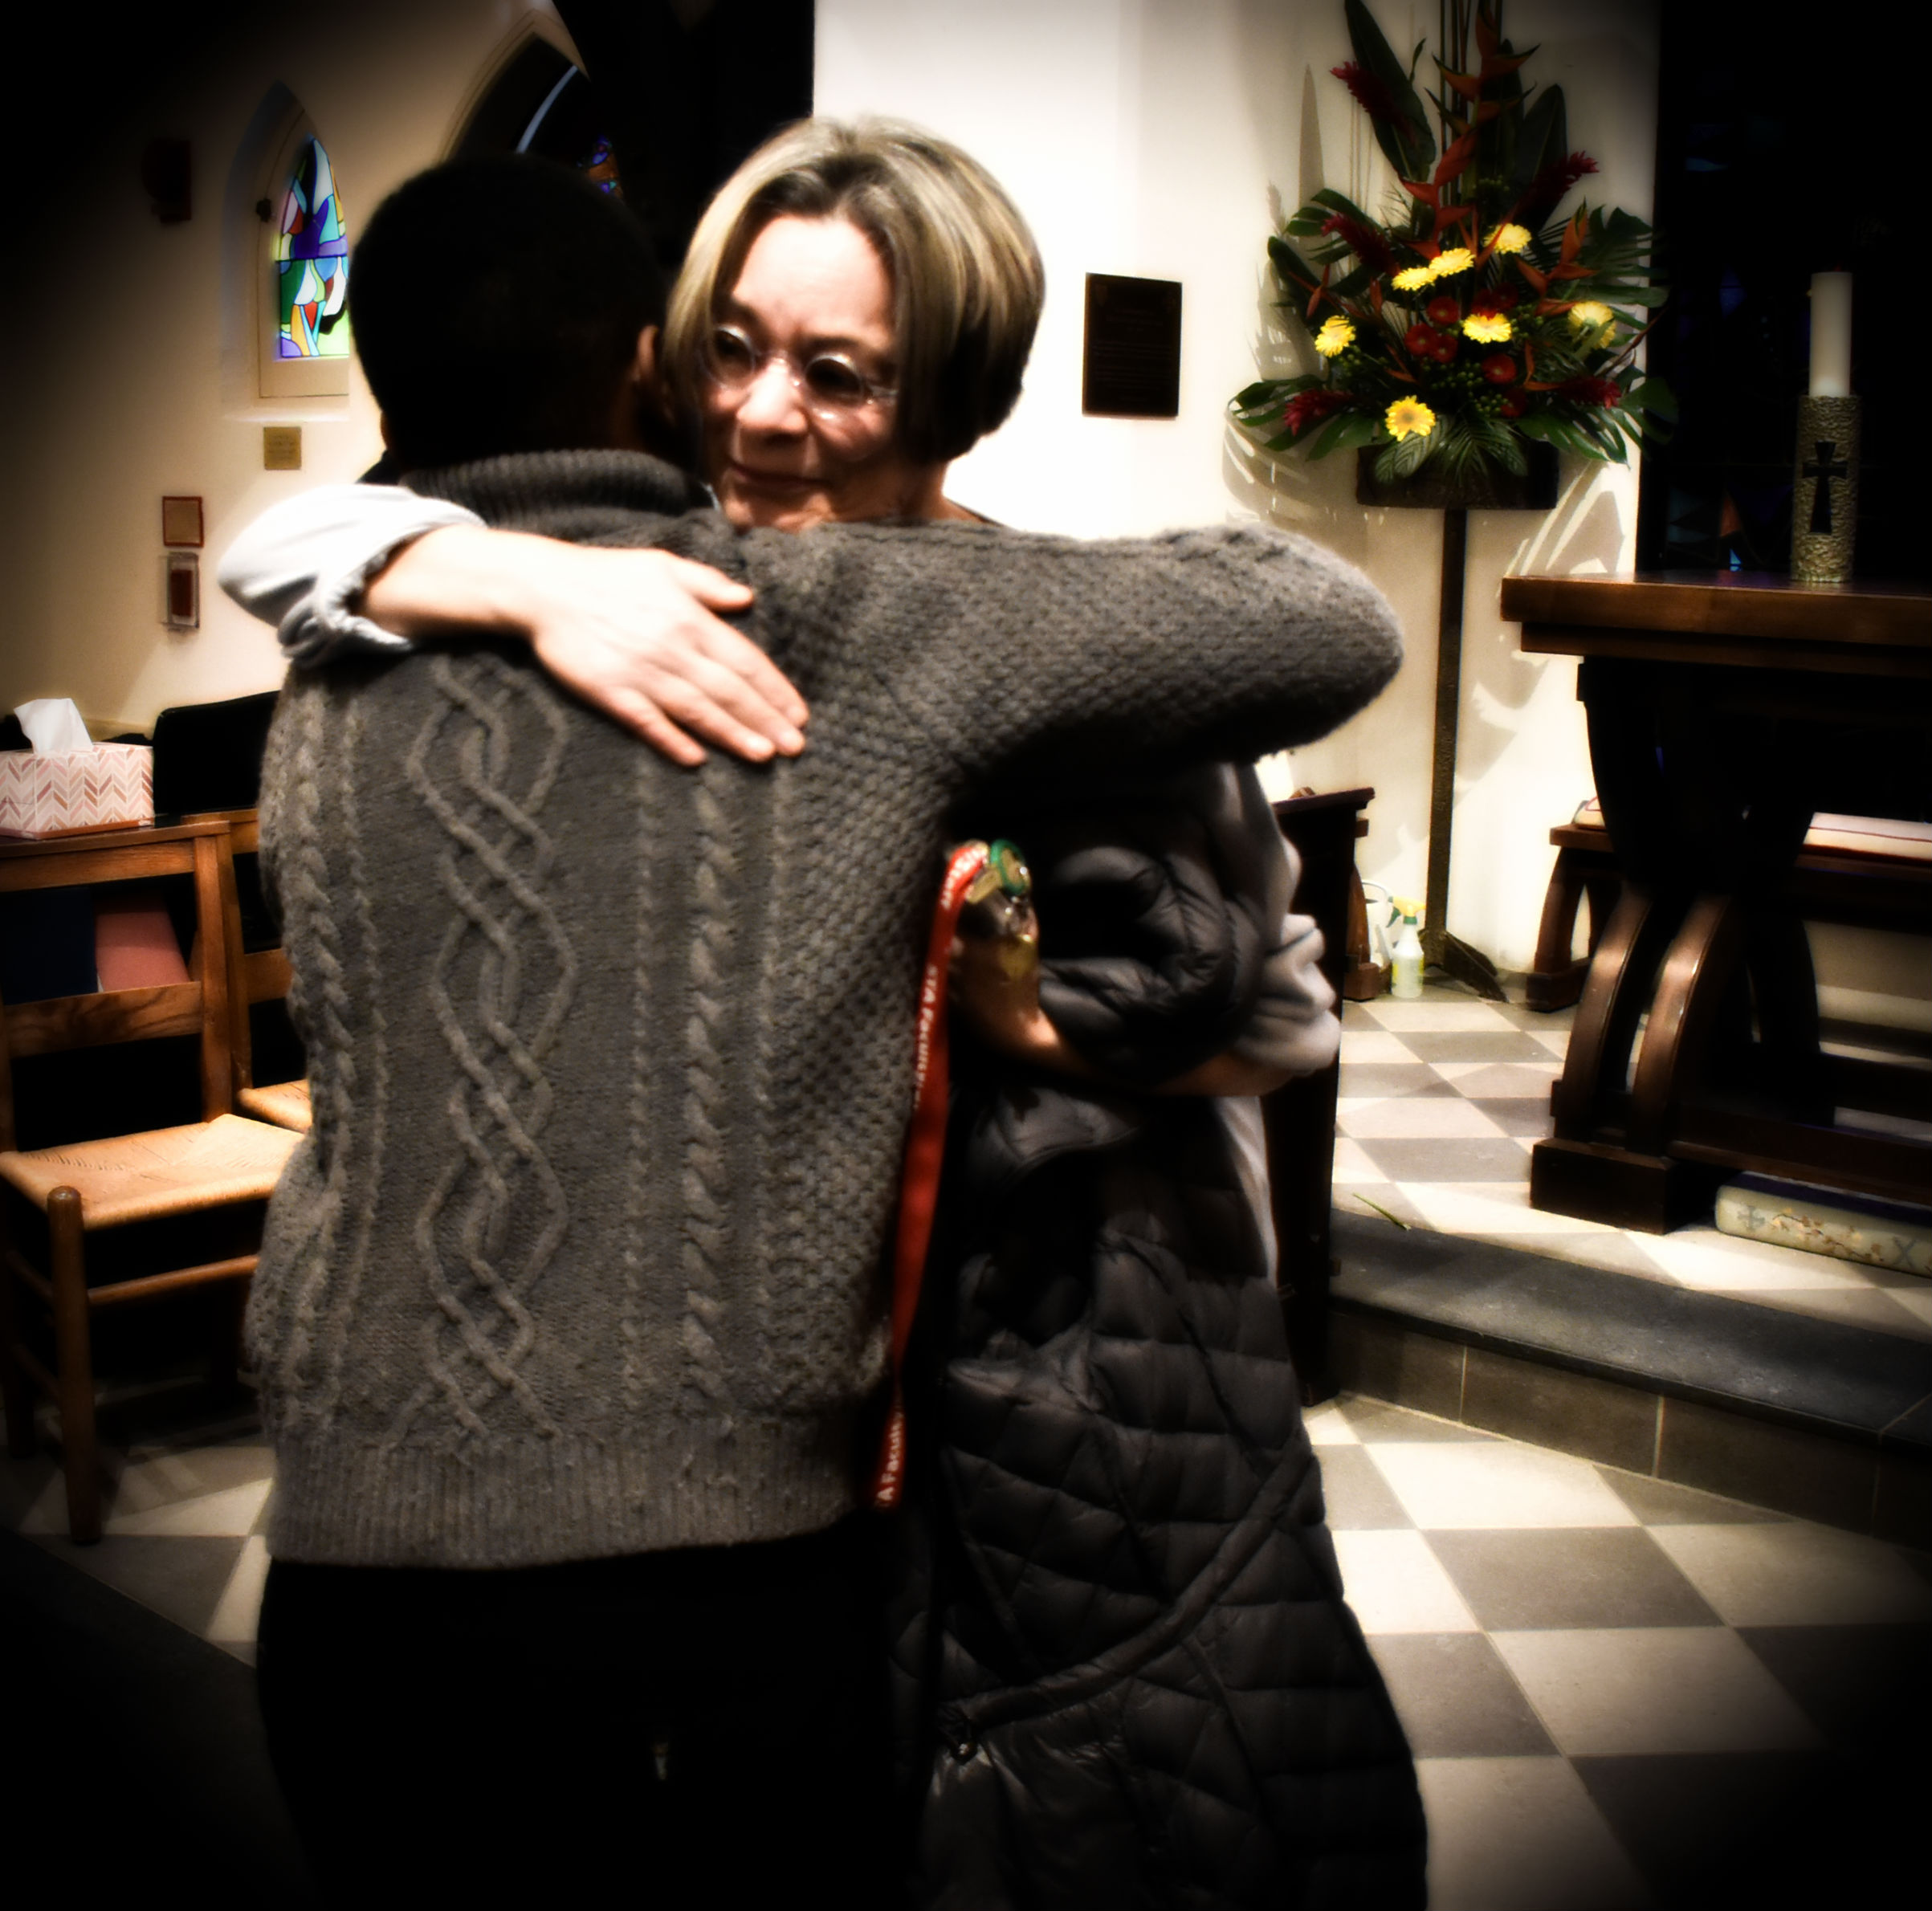 A goodbye hug by a teacher and her student inside a chapel after a service.